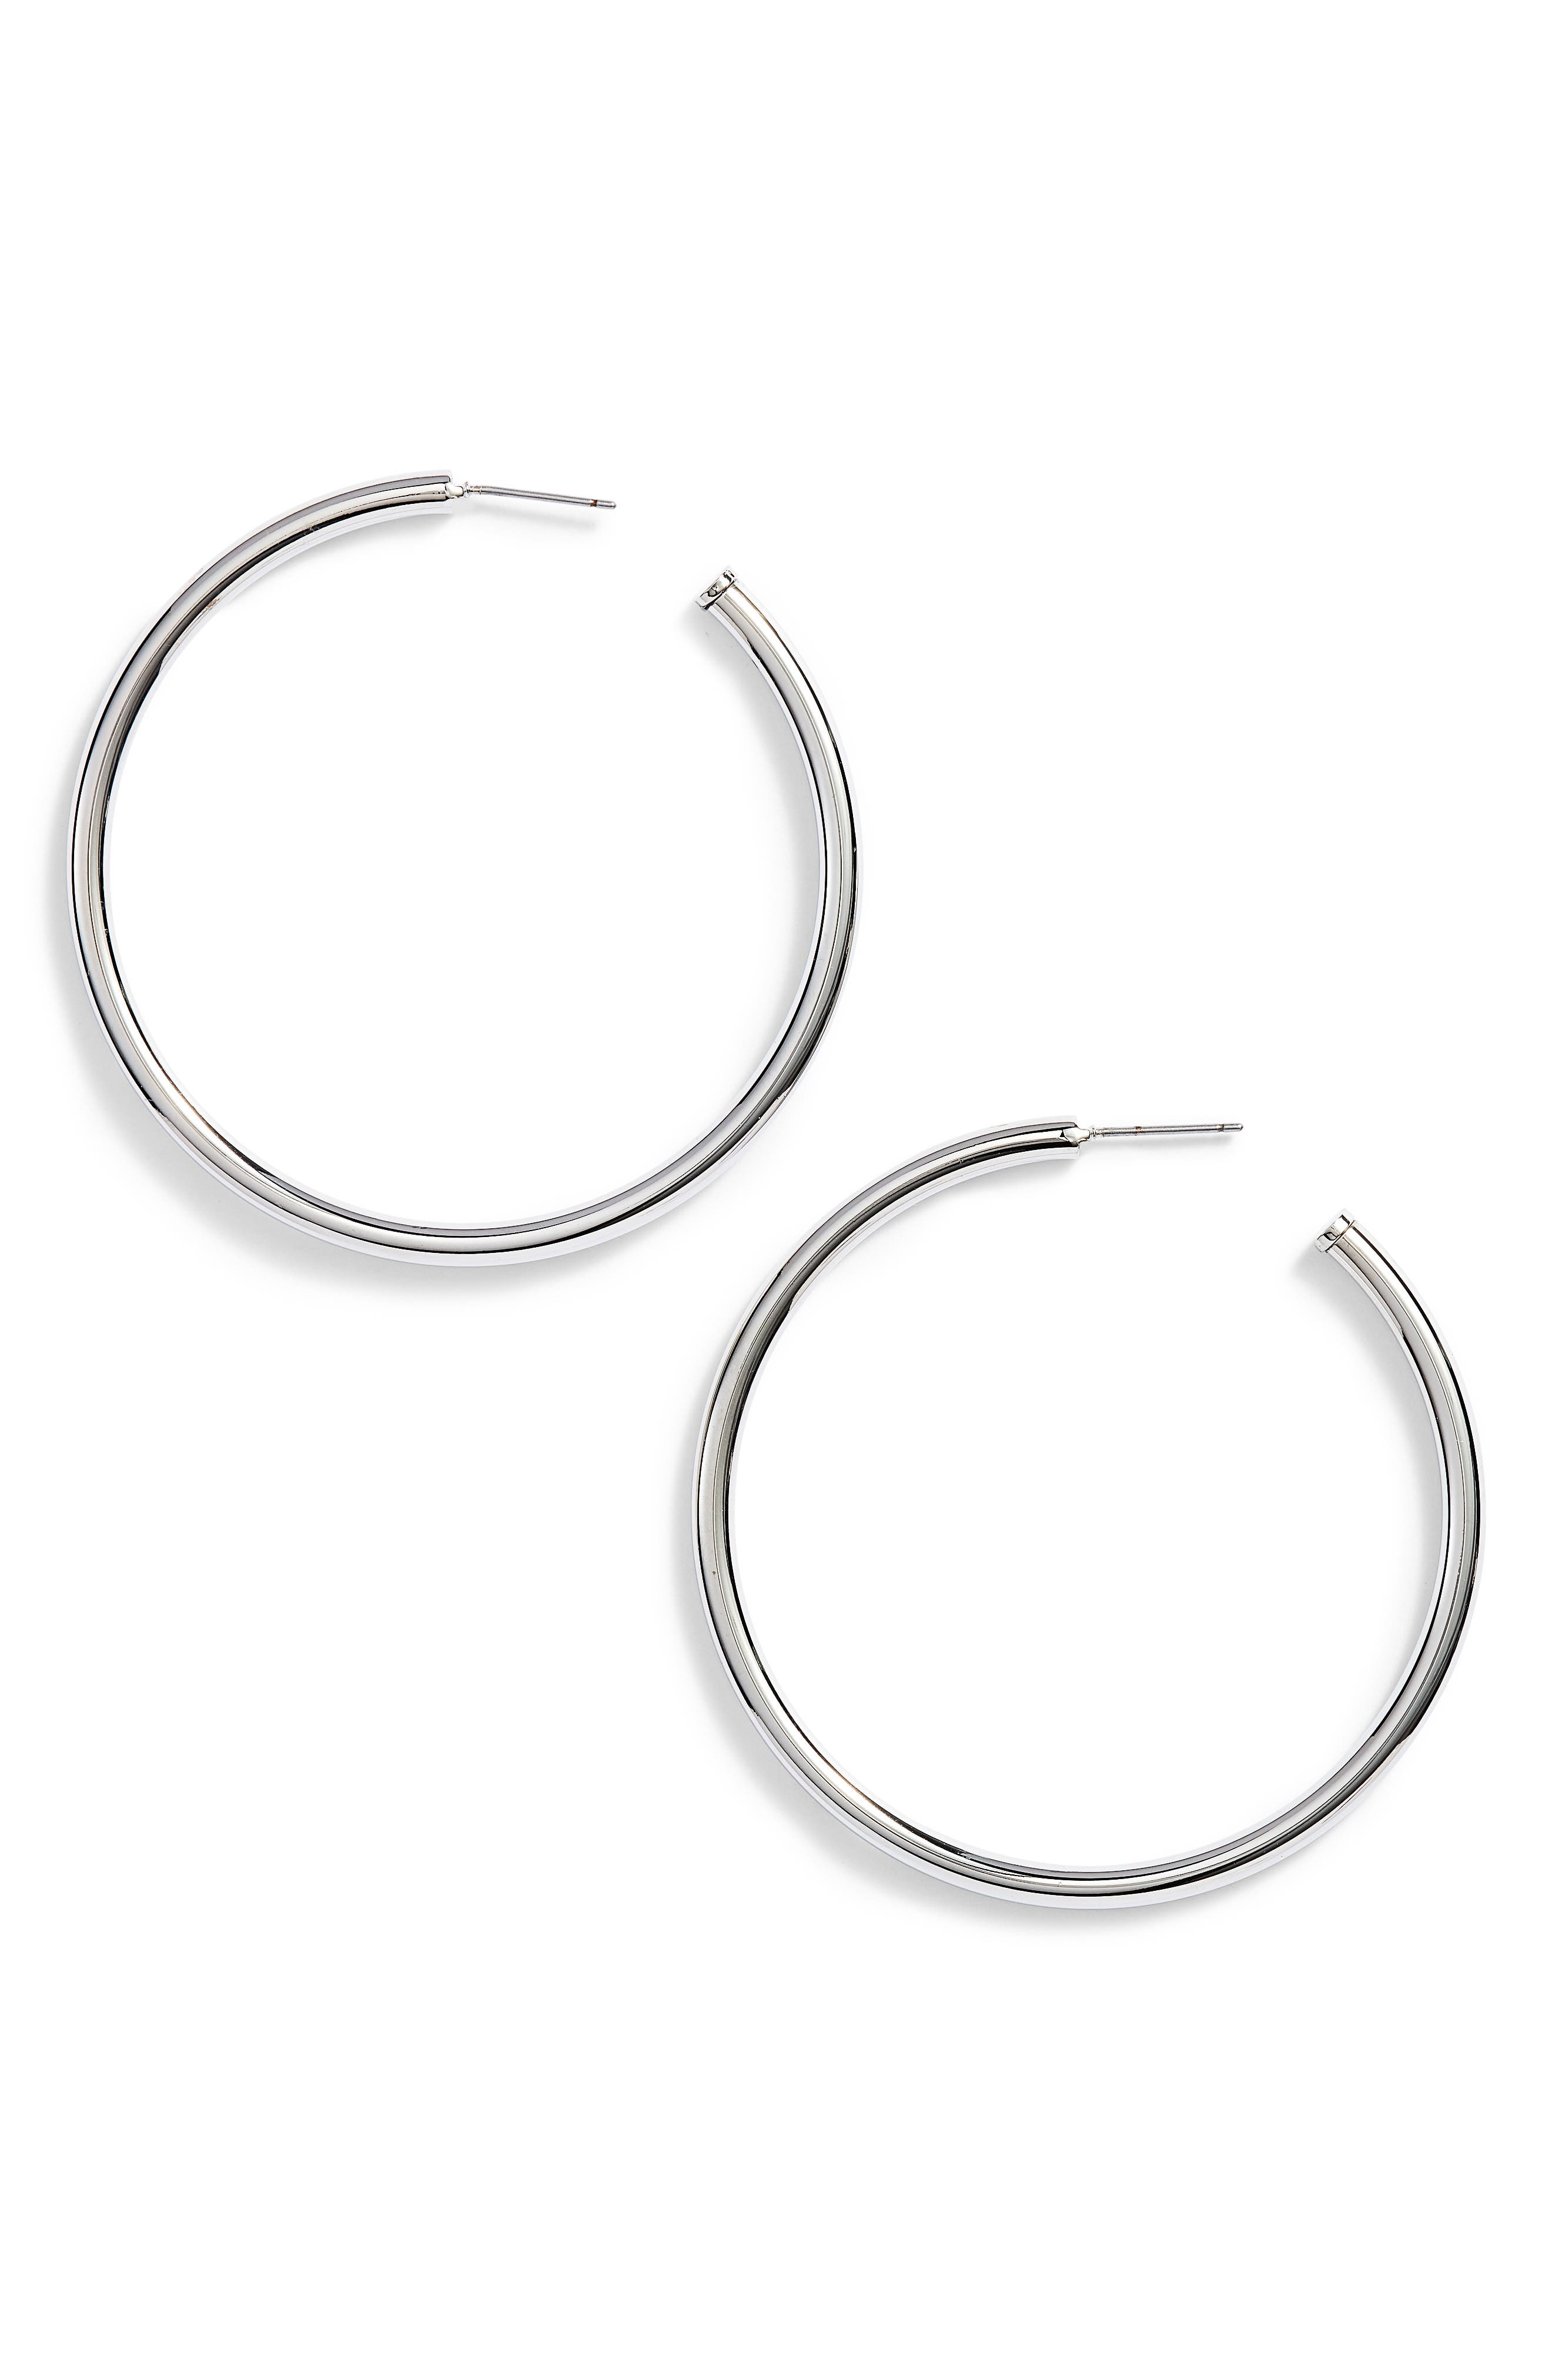 Rounded Tube Oversize Hoop Earrings,                         Main,                         color, Silver